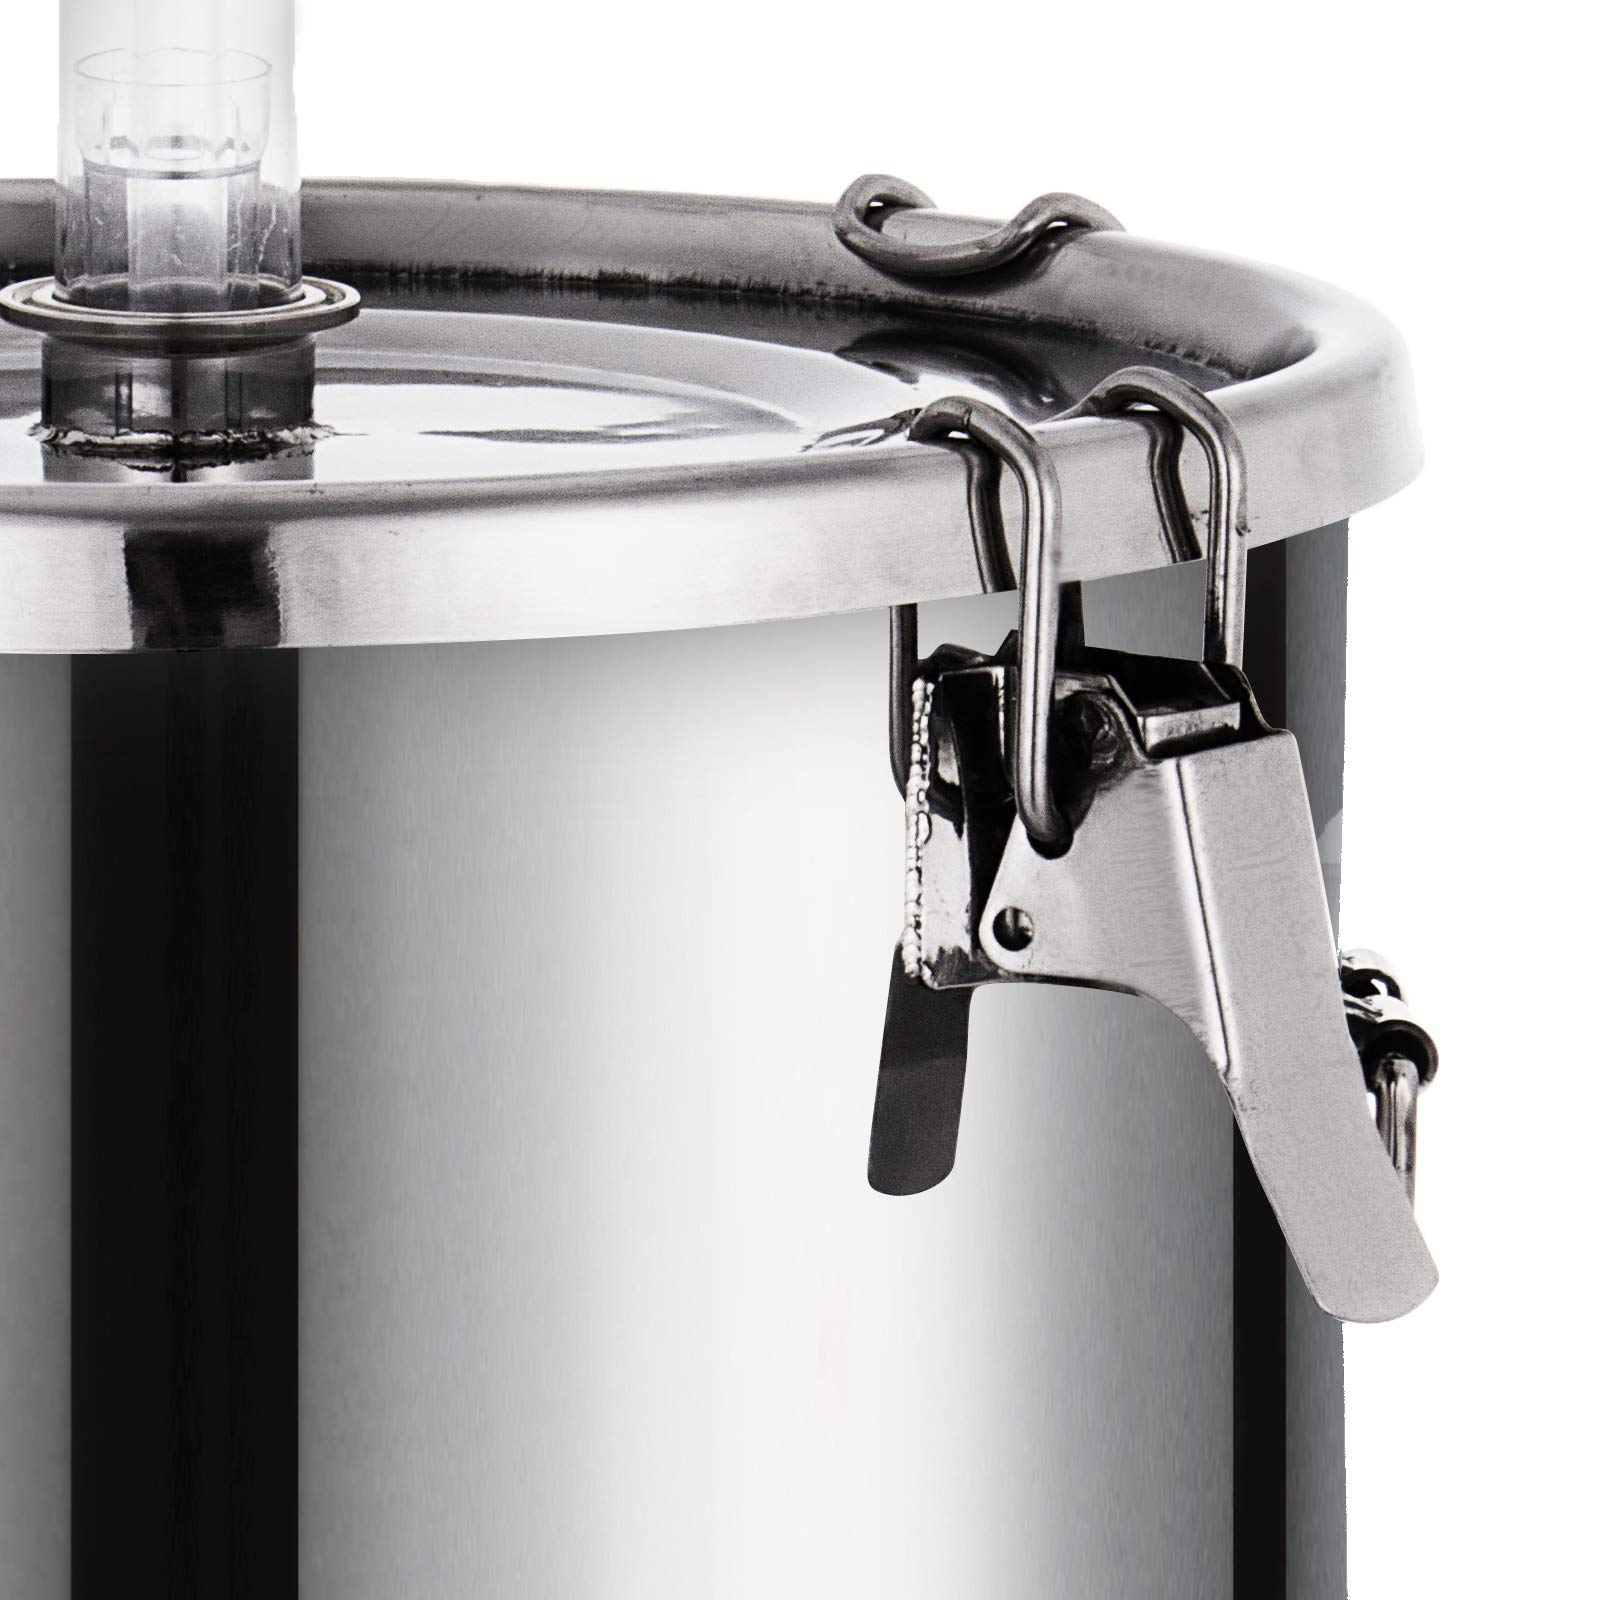 VEVOR 7 Gallon Stainless Steel Brew Fermenter Home Brewing Brew Bucket Fermenter With conical base Brewing Equipment by VEVOR (Image #6)